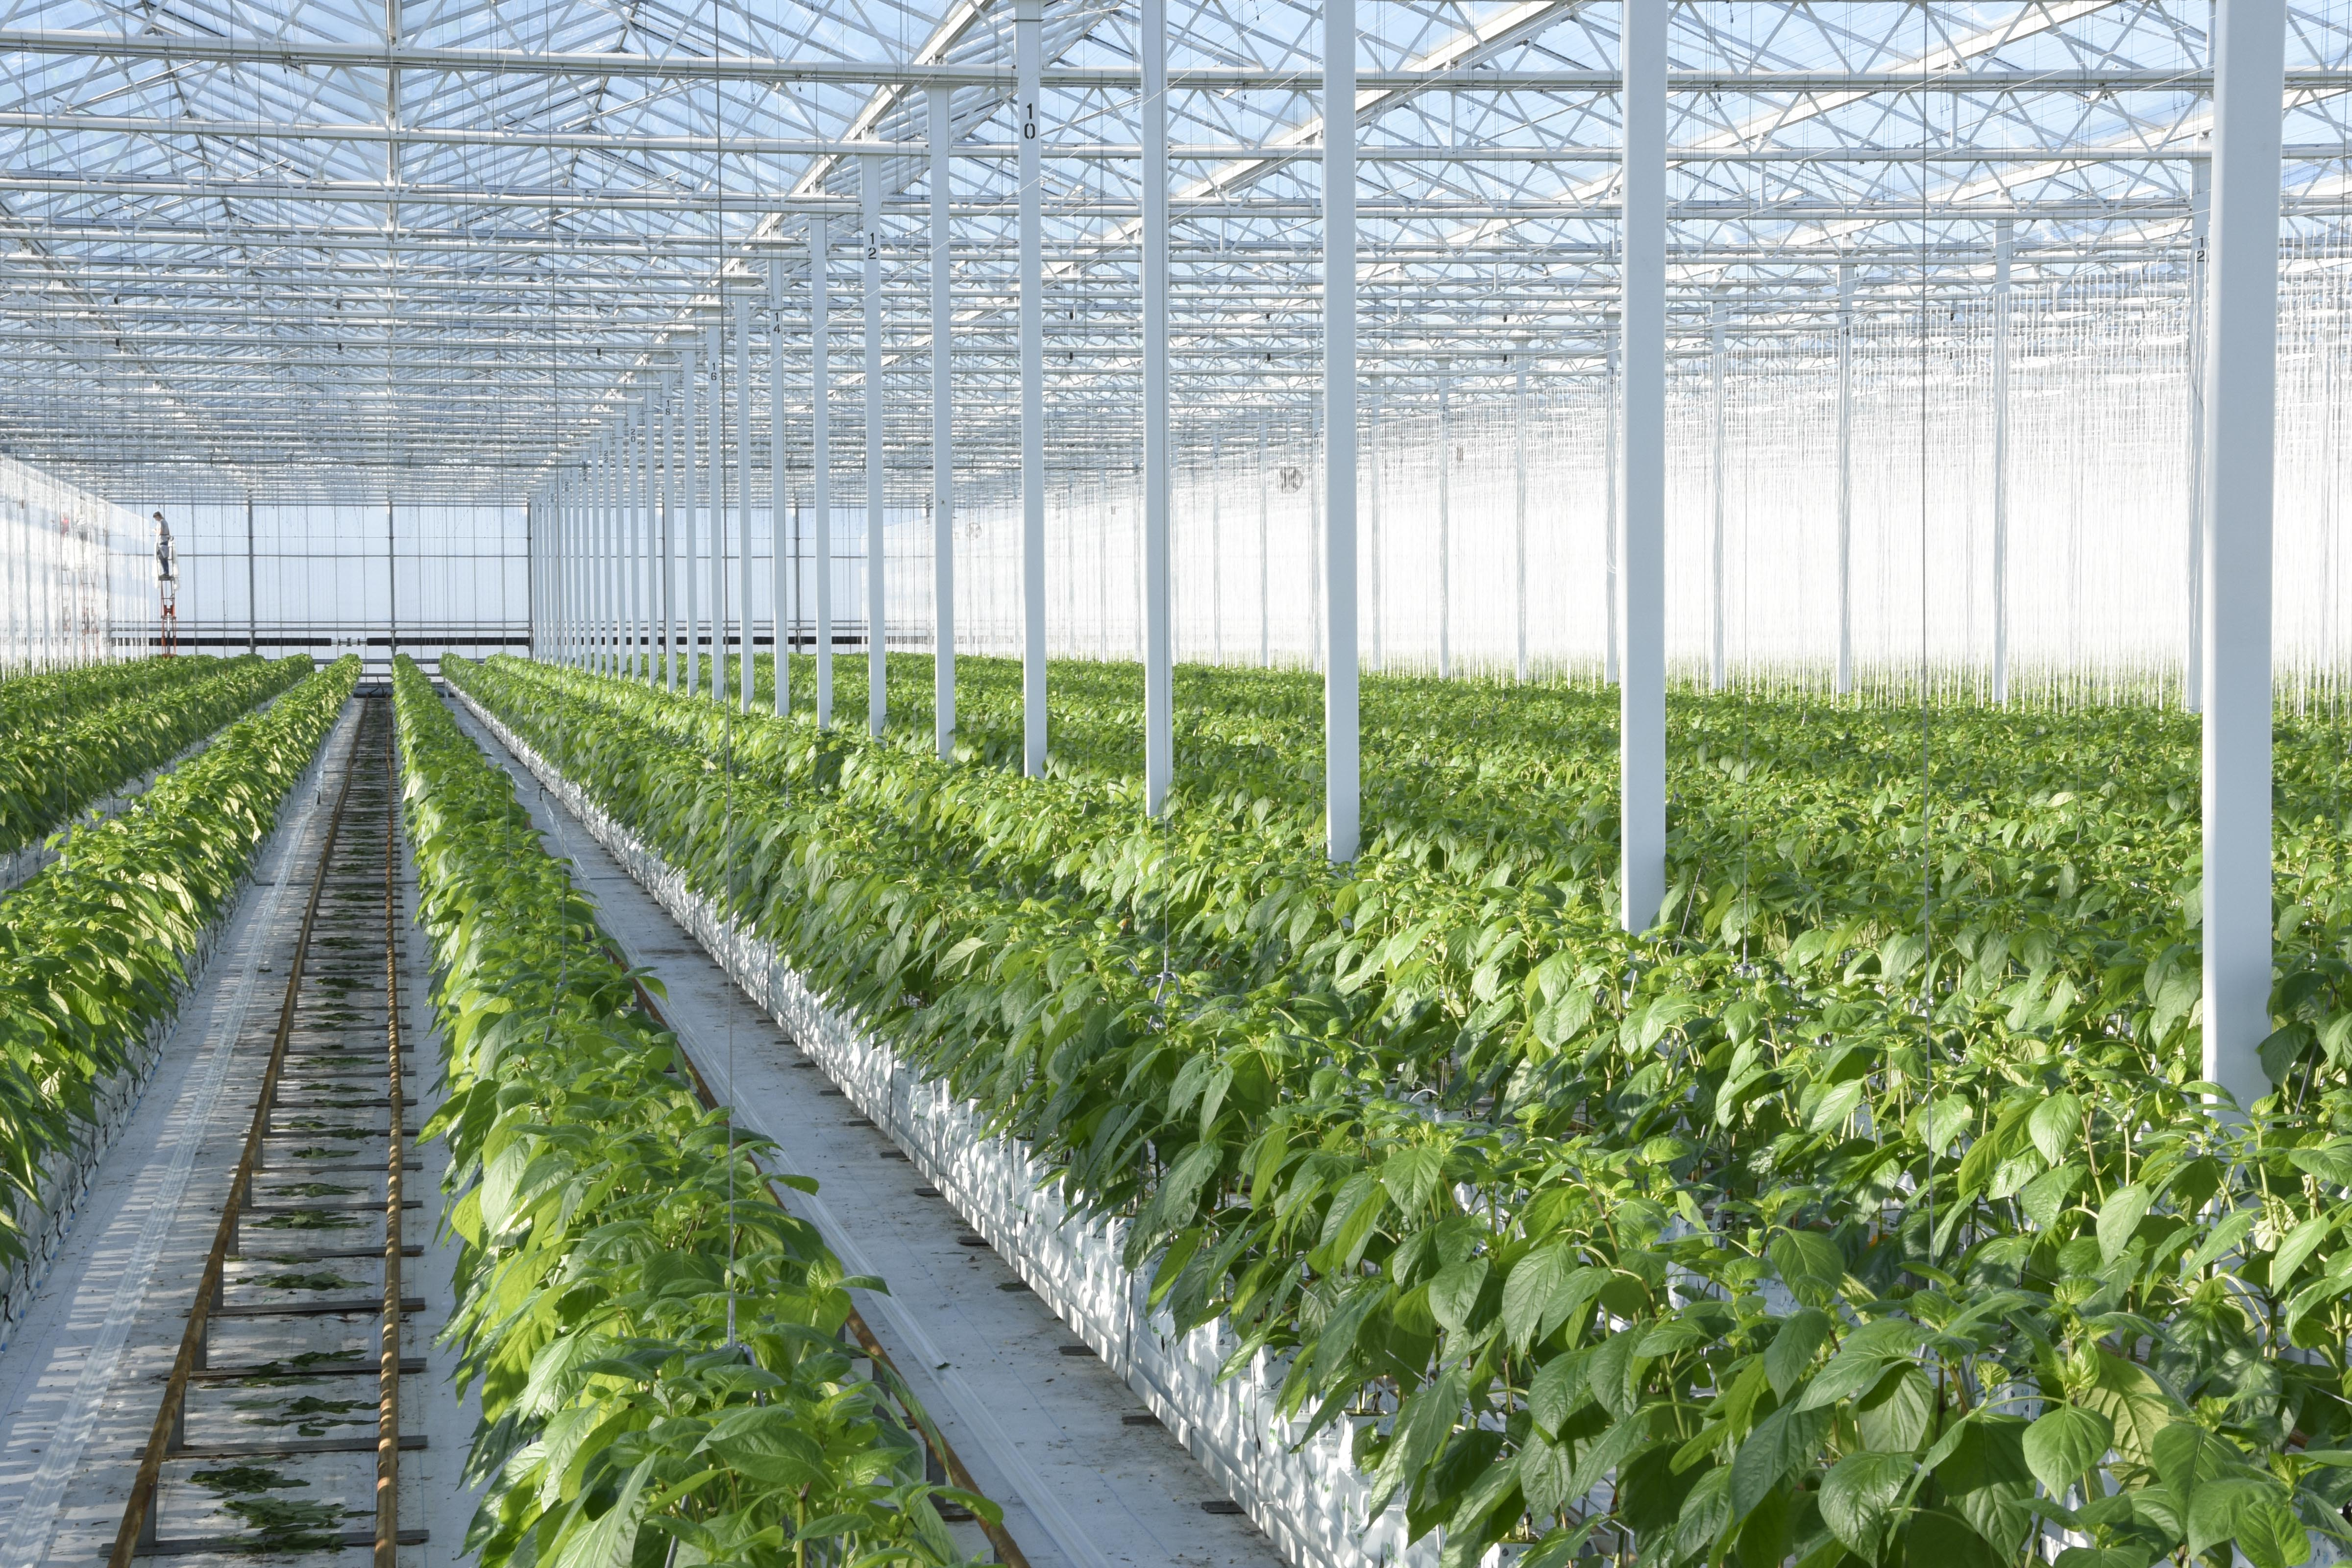 Sweet bell pepper production process by Tangmere Airfield Nurseries